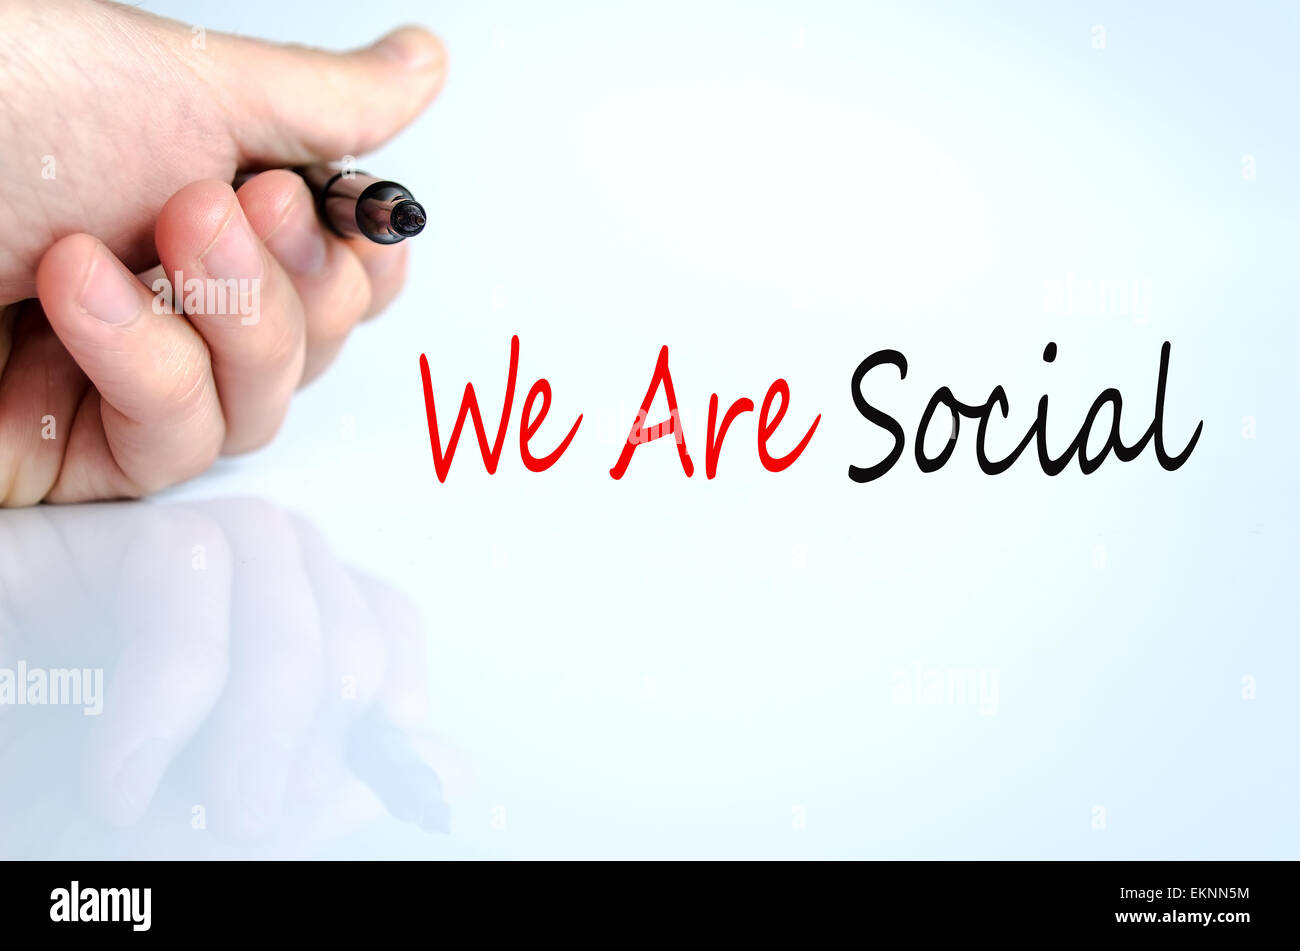 We Are Social Concept Isolated Over White Background - Stock Image